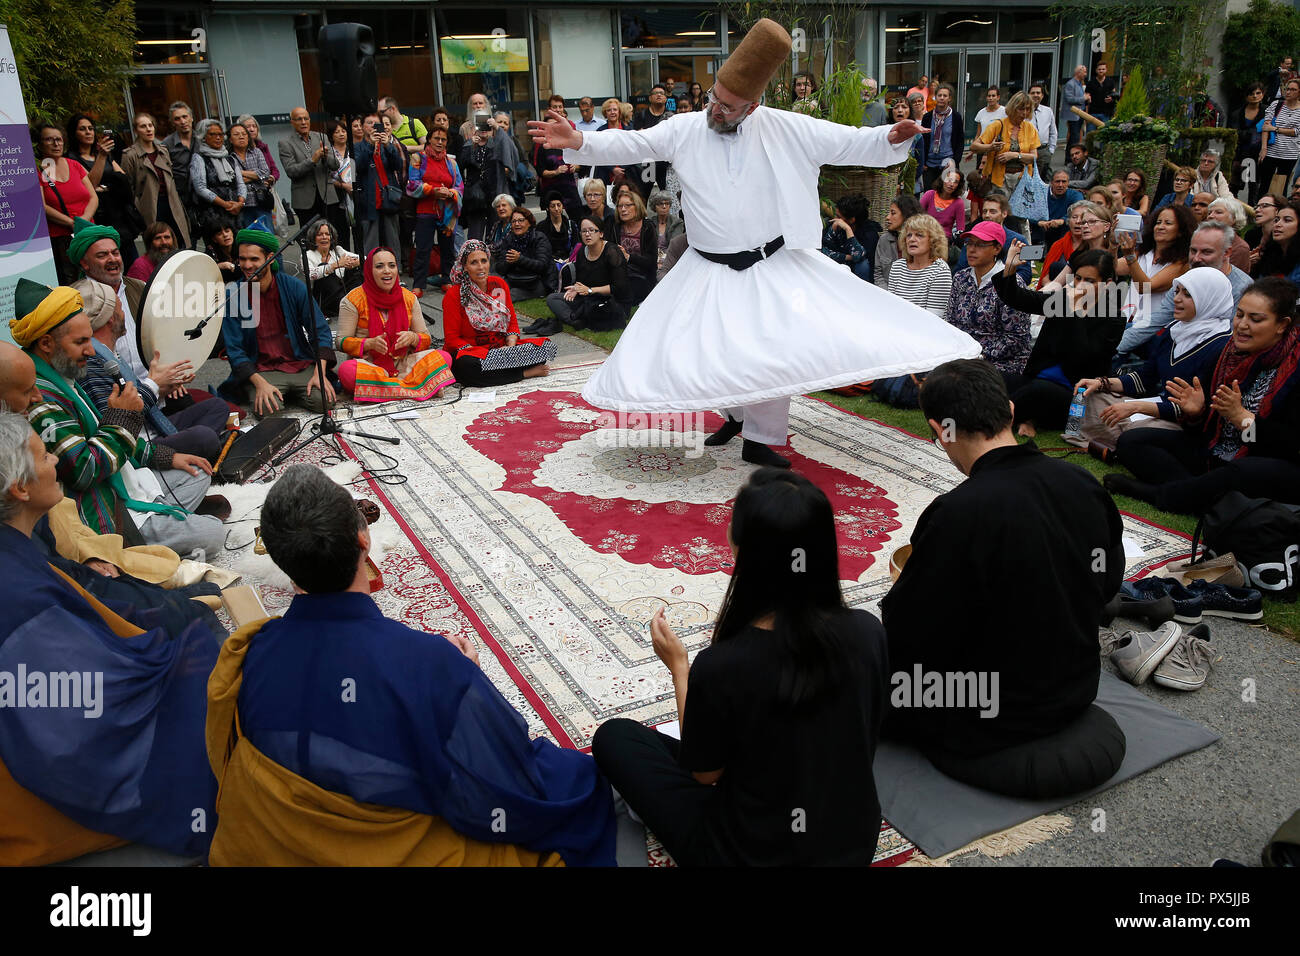 Zen buddhists and muslim sufis praying and celebrating together at the Salon Zen, Paris, France. Whirling dervish. - Stock Image